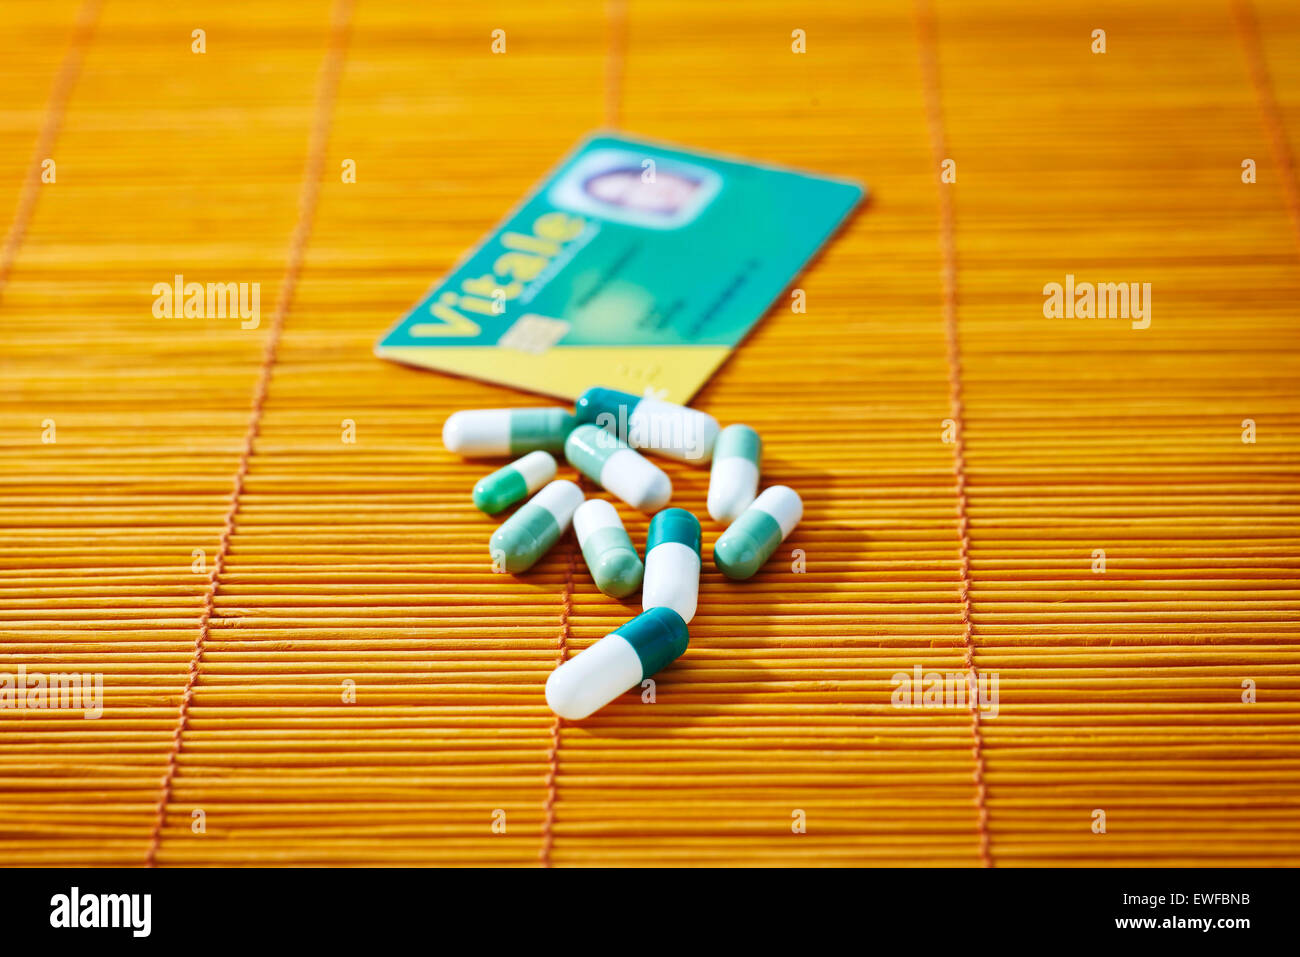 NATIONAL HEALTH SERVICE CARD - Stock Image